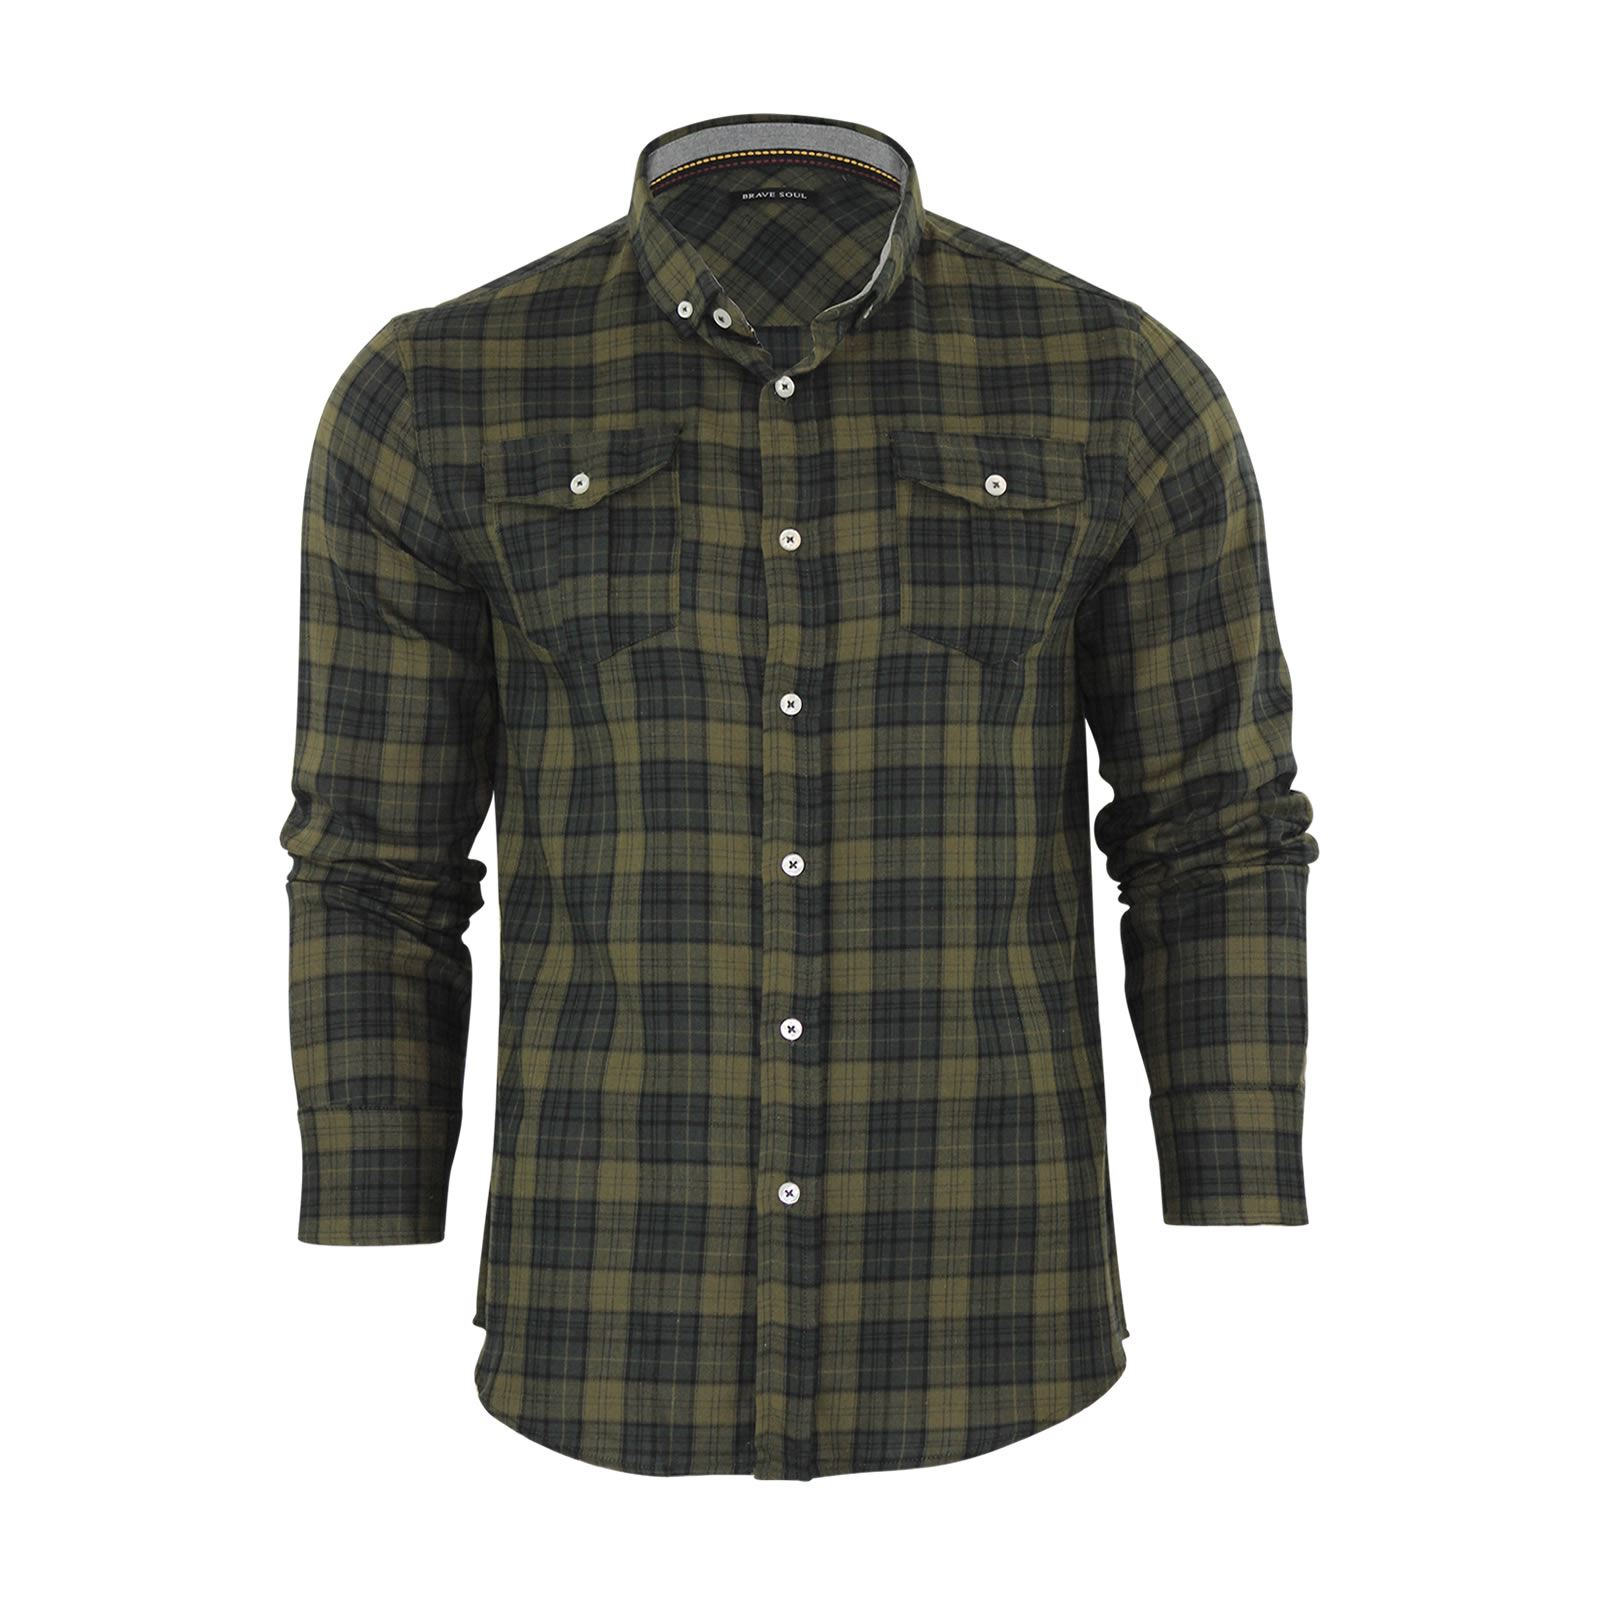 Brave-Soul-Mens-Check-Shirt-Flannel-Brushed-Cotton-Long-Sleeve-Casual-Top thumbnail 65